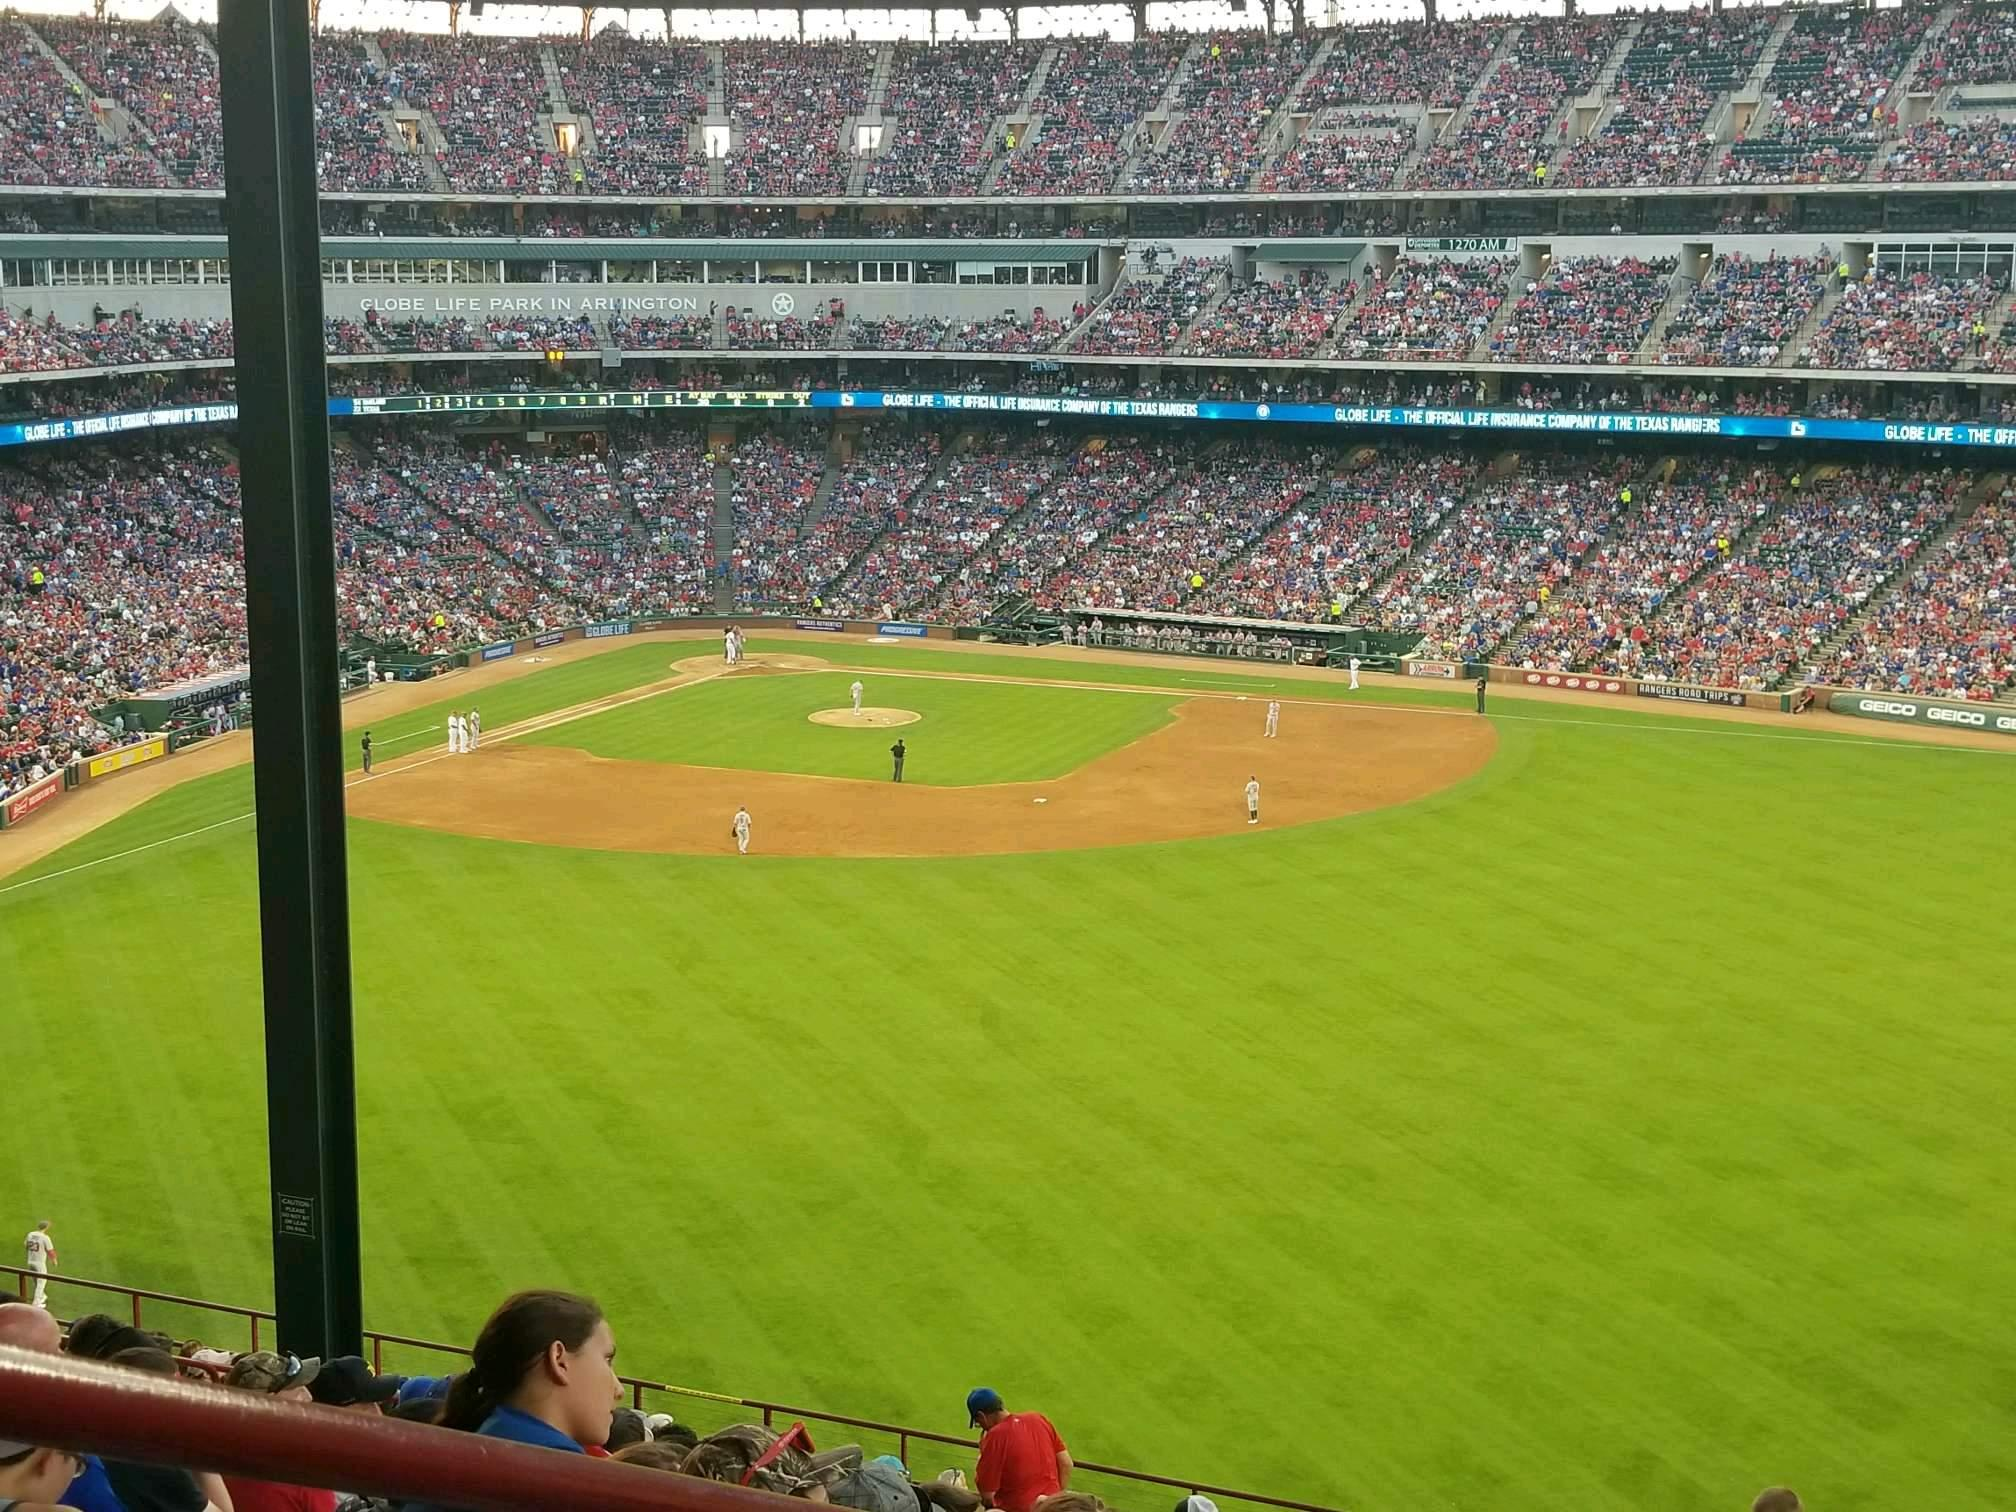 Globe Life Park in Arlington Section 252 Row 22 Seat 1